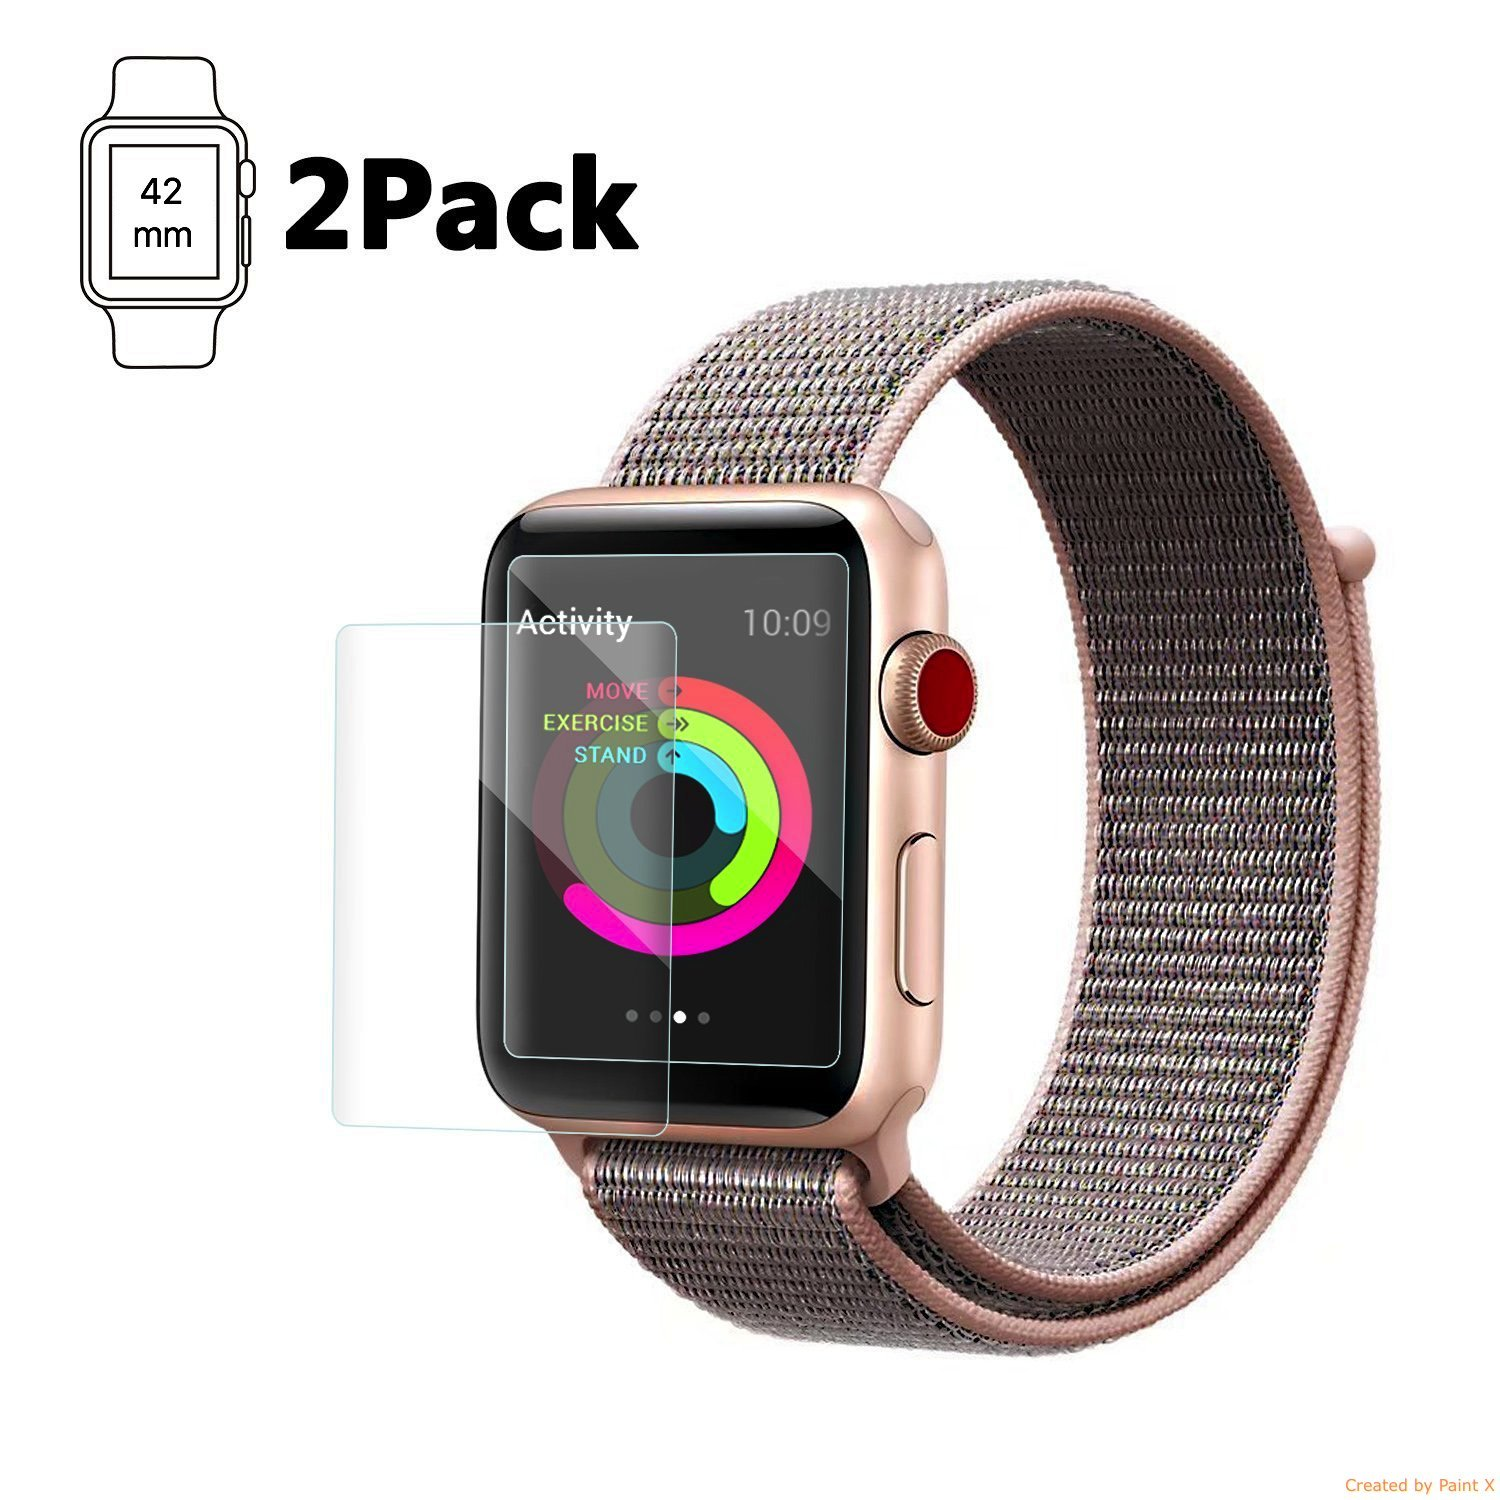 Casual Accessories Apple Watch 42 mm Screen Protector (Series 3/2/1 Compatible) [2-Pack], BodyArmor Full Coverage Screen Protector for Apple Watch Military-Grade Clear HD Anti-Bubble Film (42)